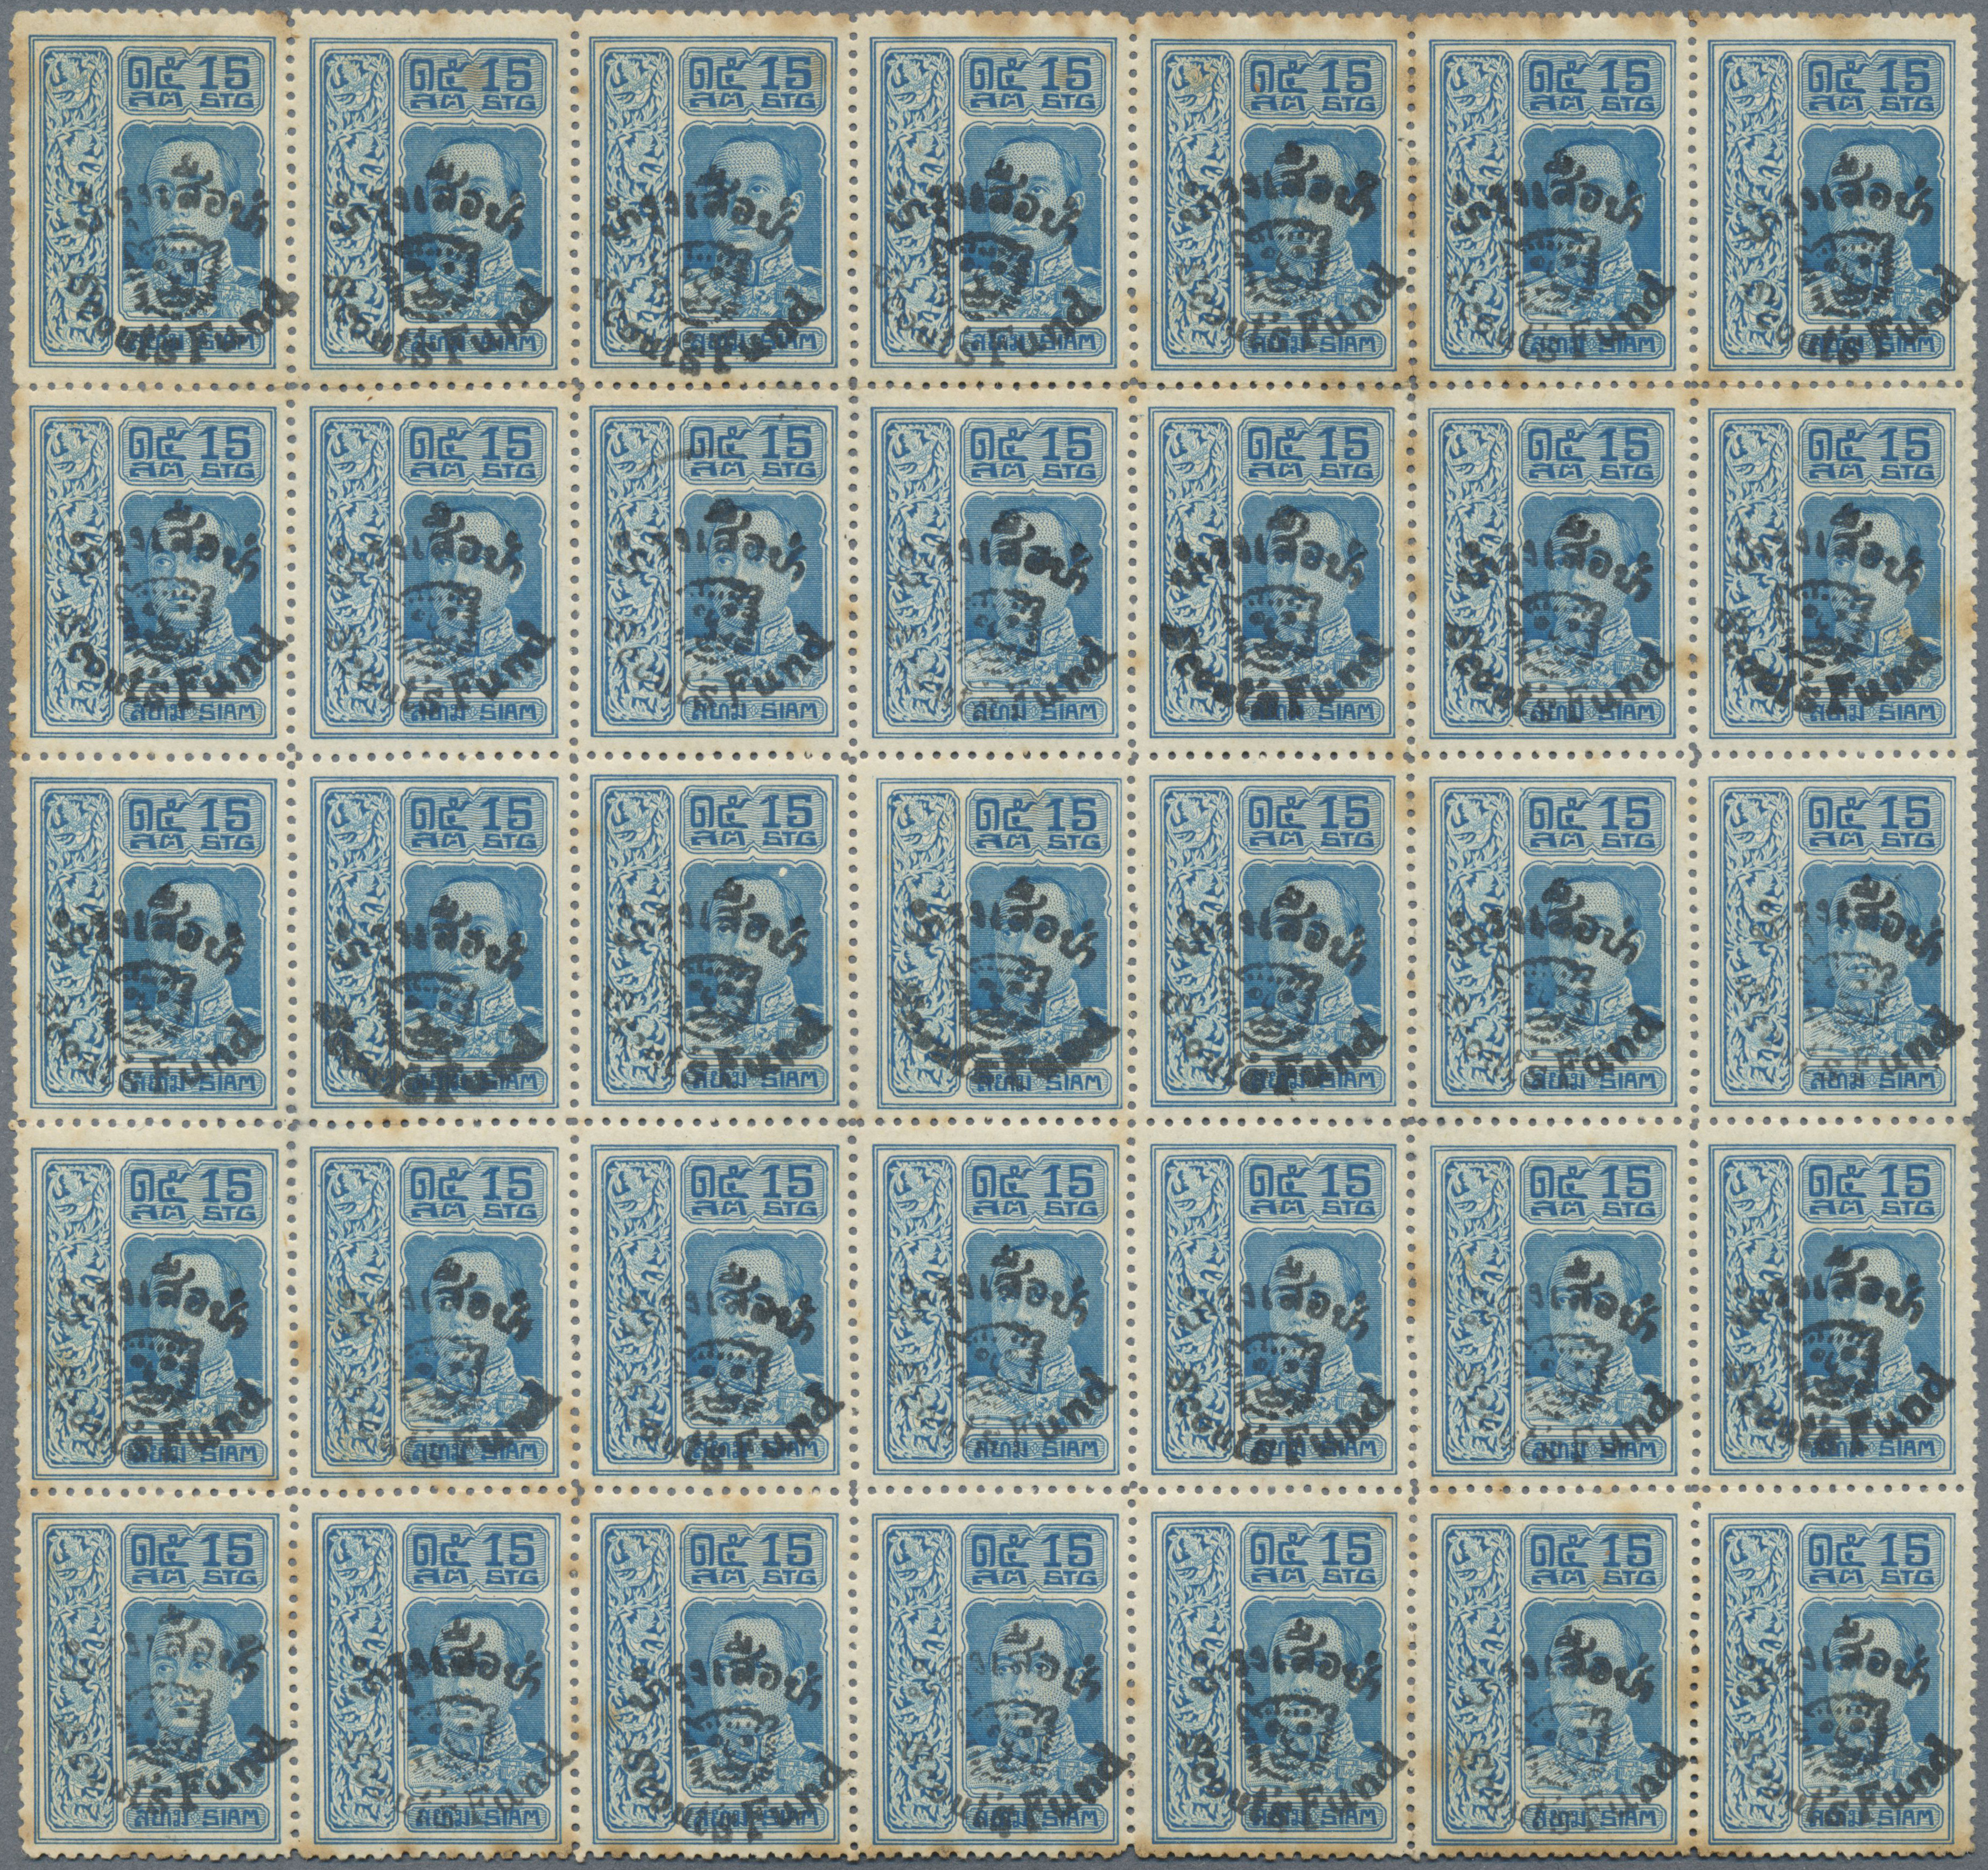 Lot 11926 - thematik: pfadfinder / boy scouts  -  Auktionshaus Christoph Gärtner GmbH & Co. KG Single lots Philately Overseas & Europe. Auction #39 Day 4